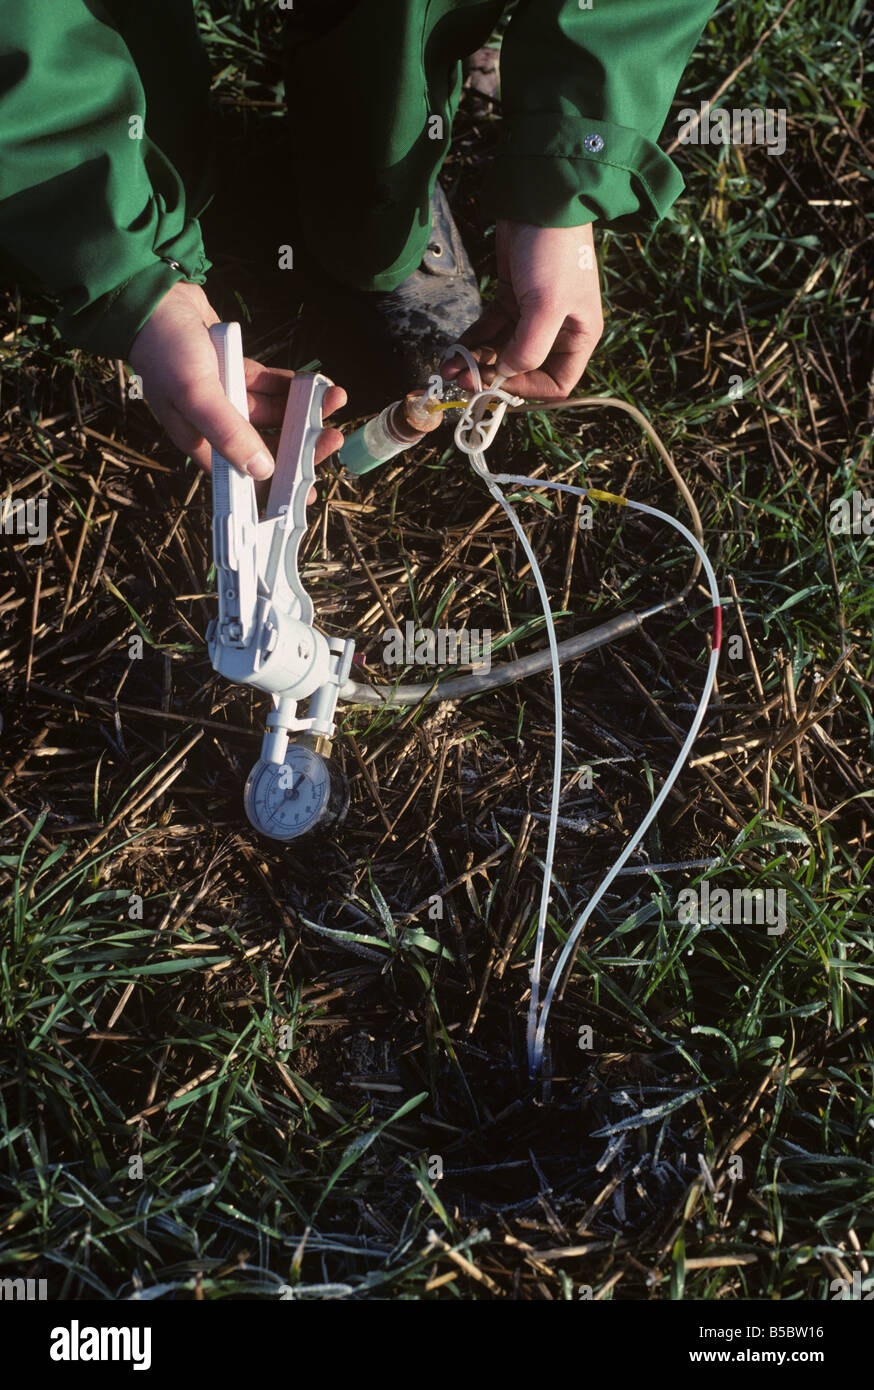 Technician drawing out lechate from porous pot placed in a bore hole - Stock Image